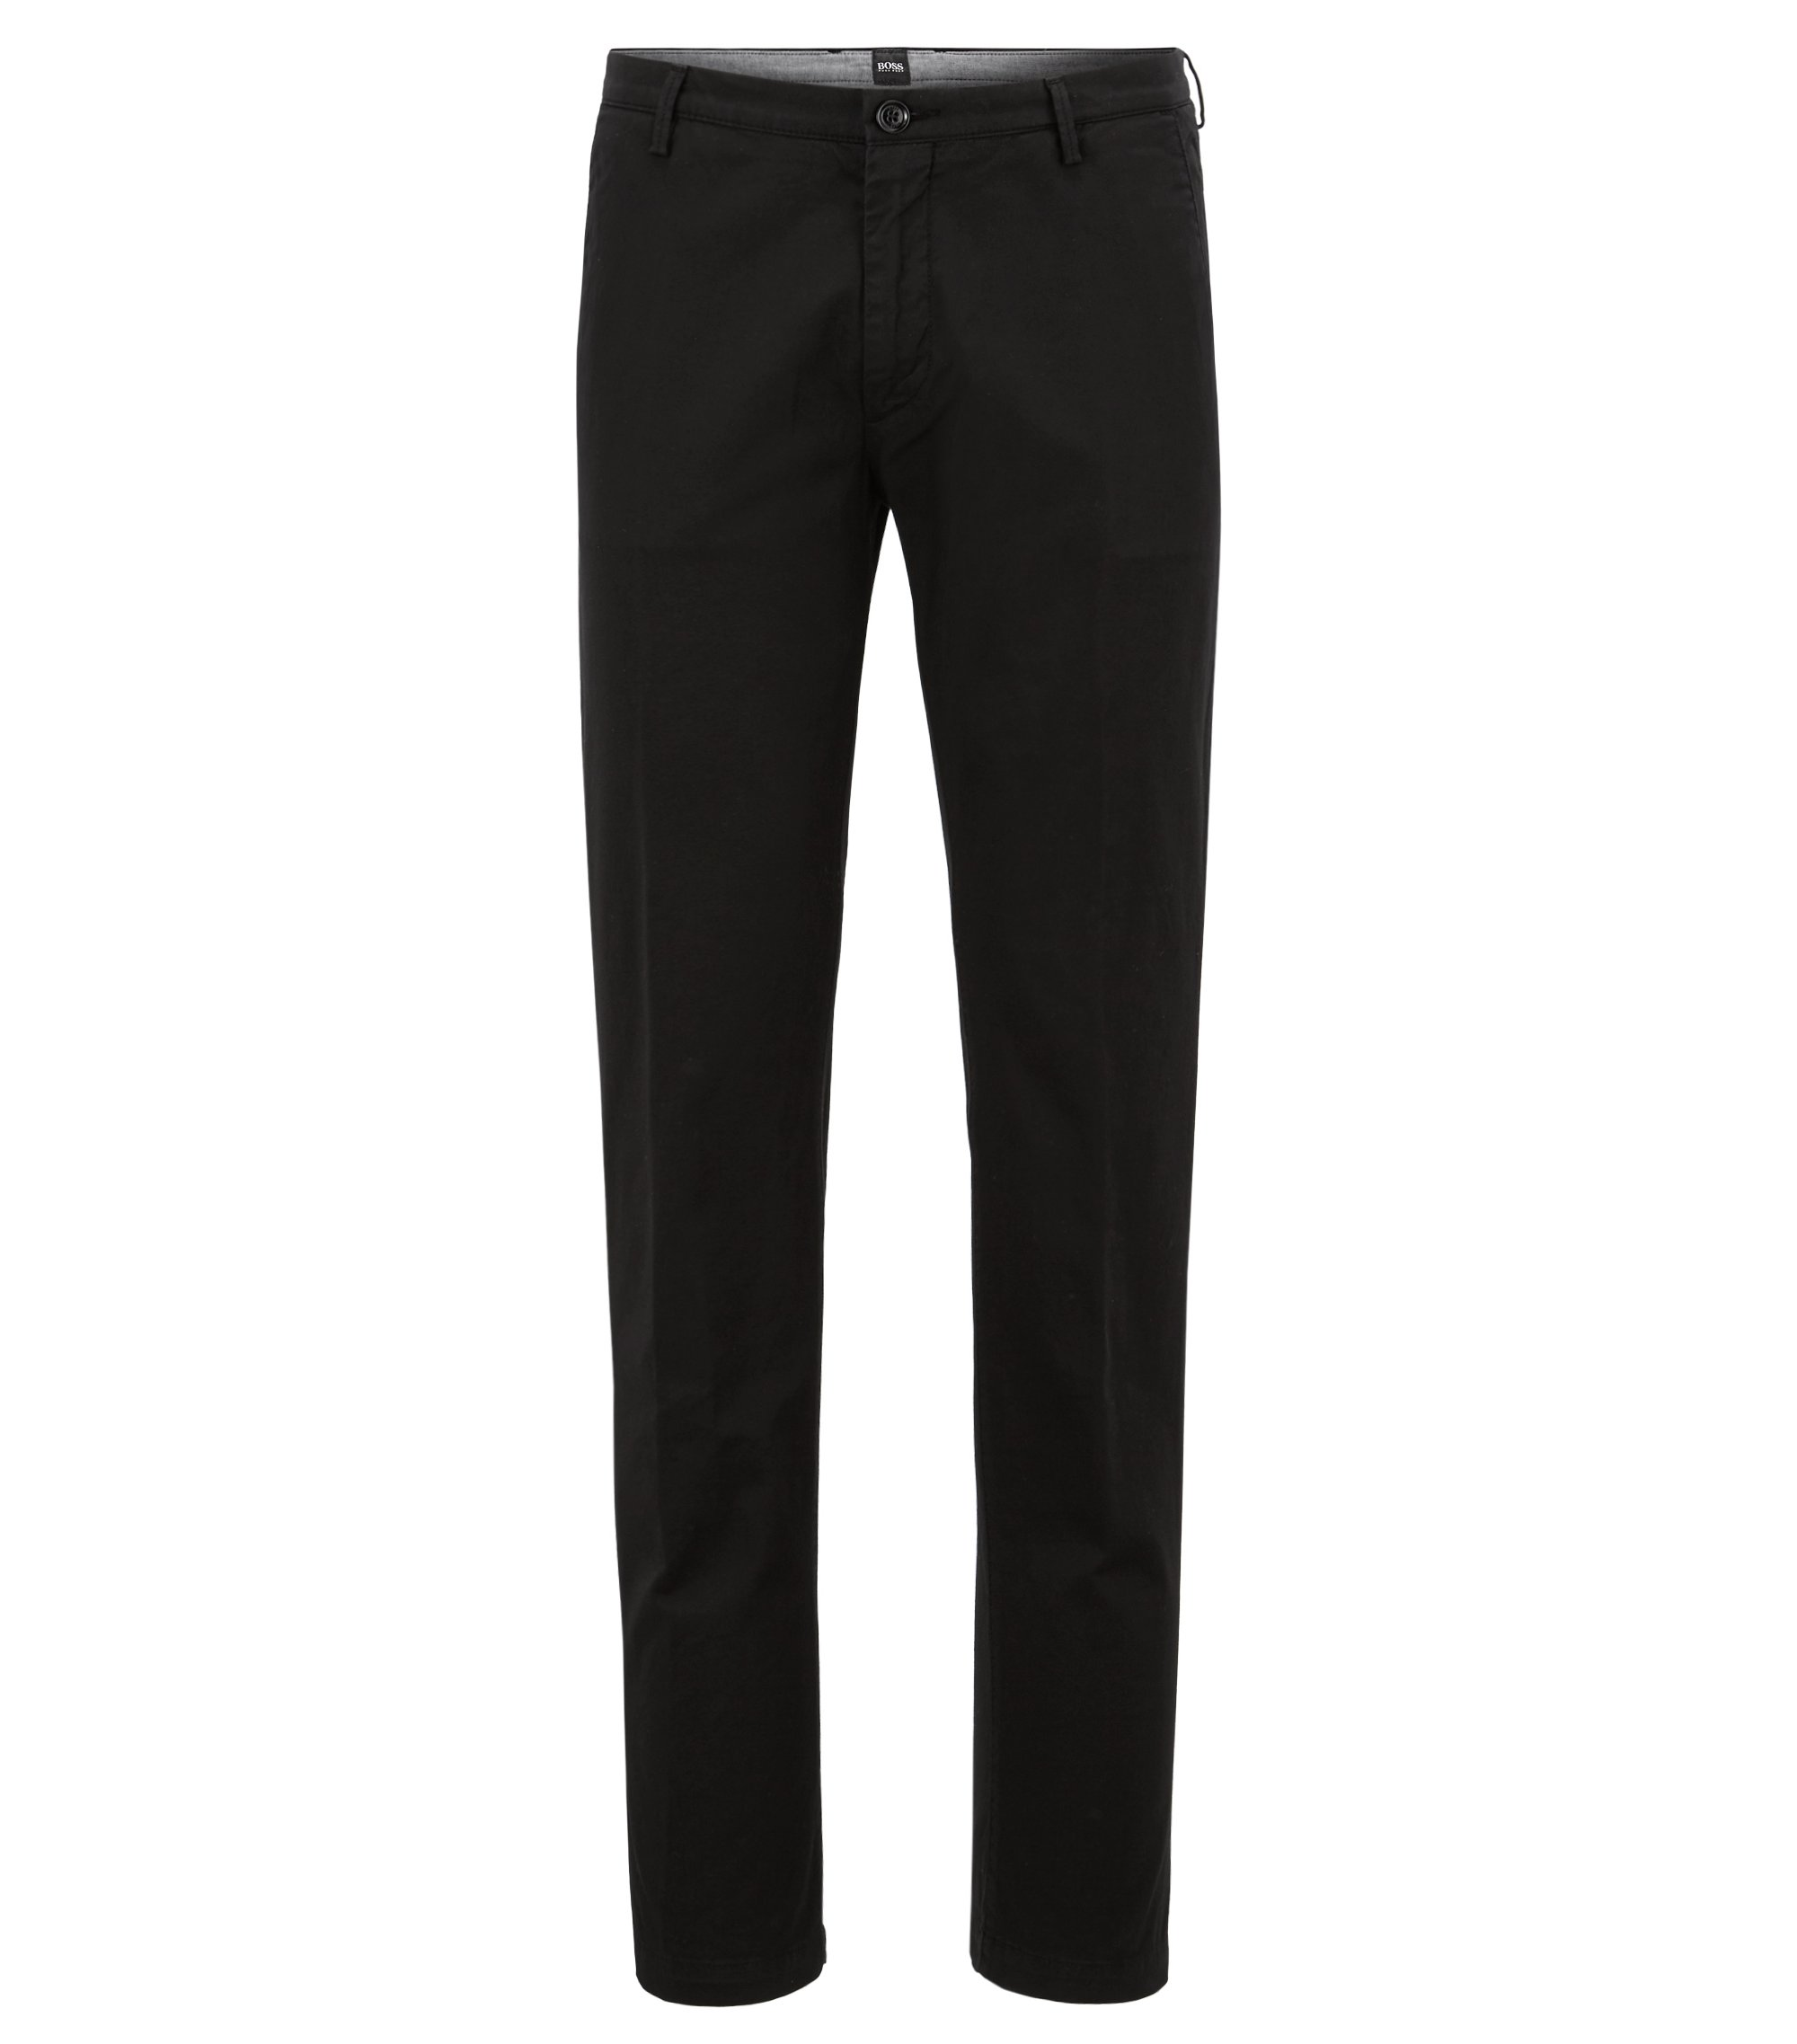 Cotton Stretch Chino Pant, Slim Fit | Rice D, Black